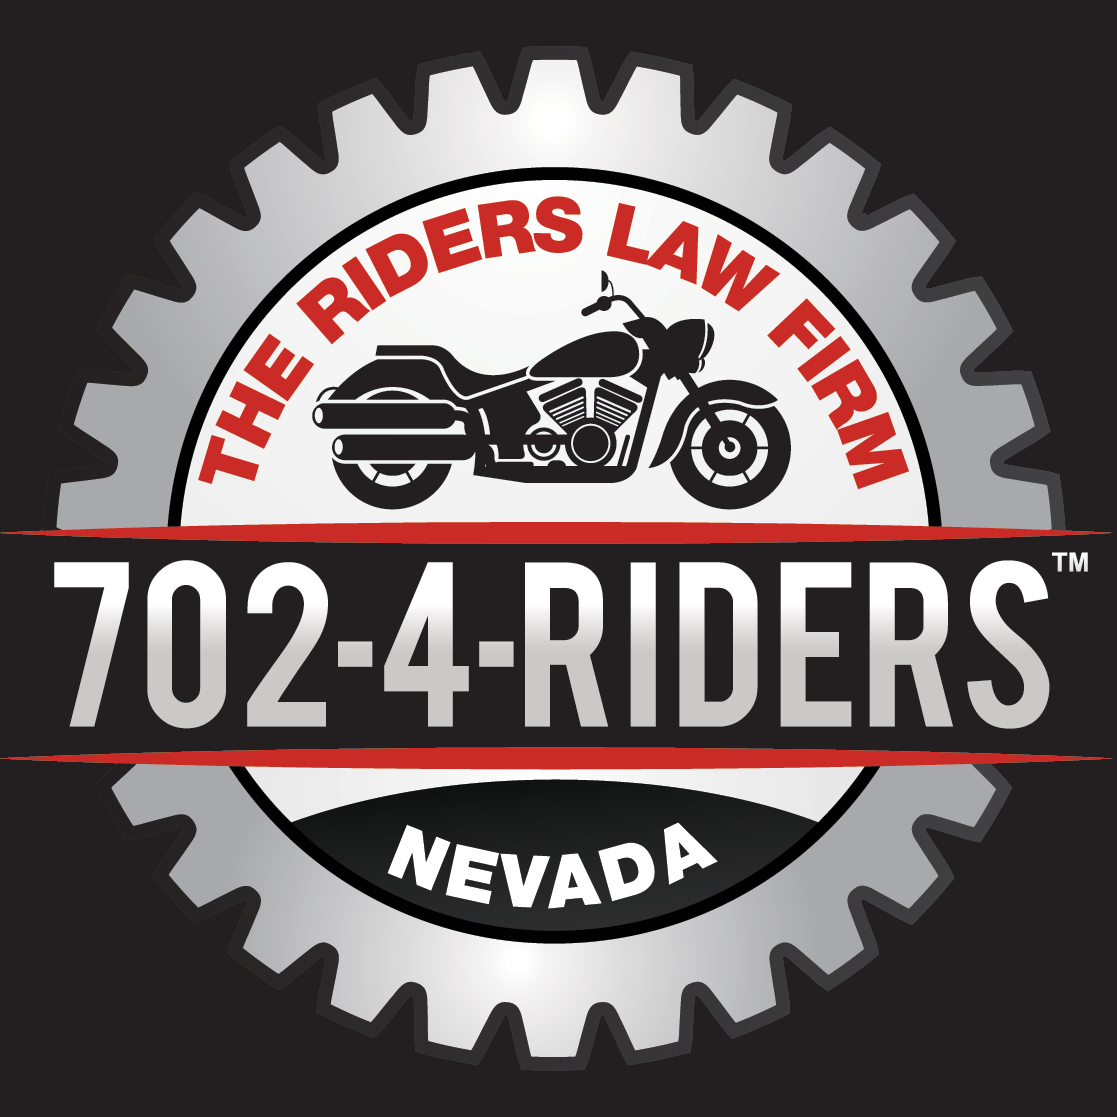 The Riders Law Firm